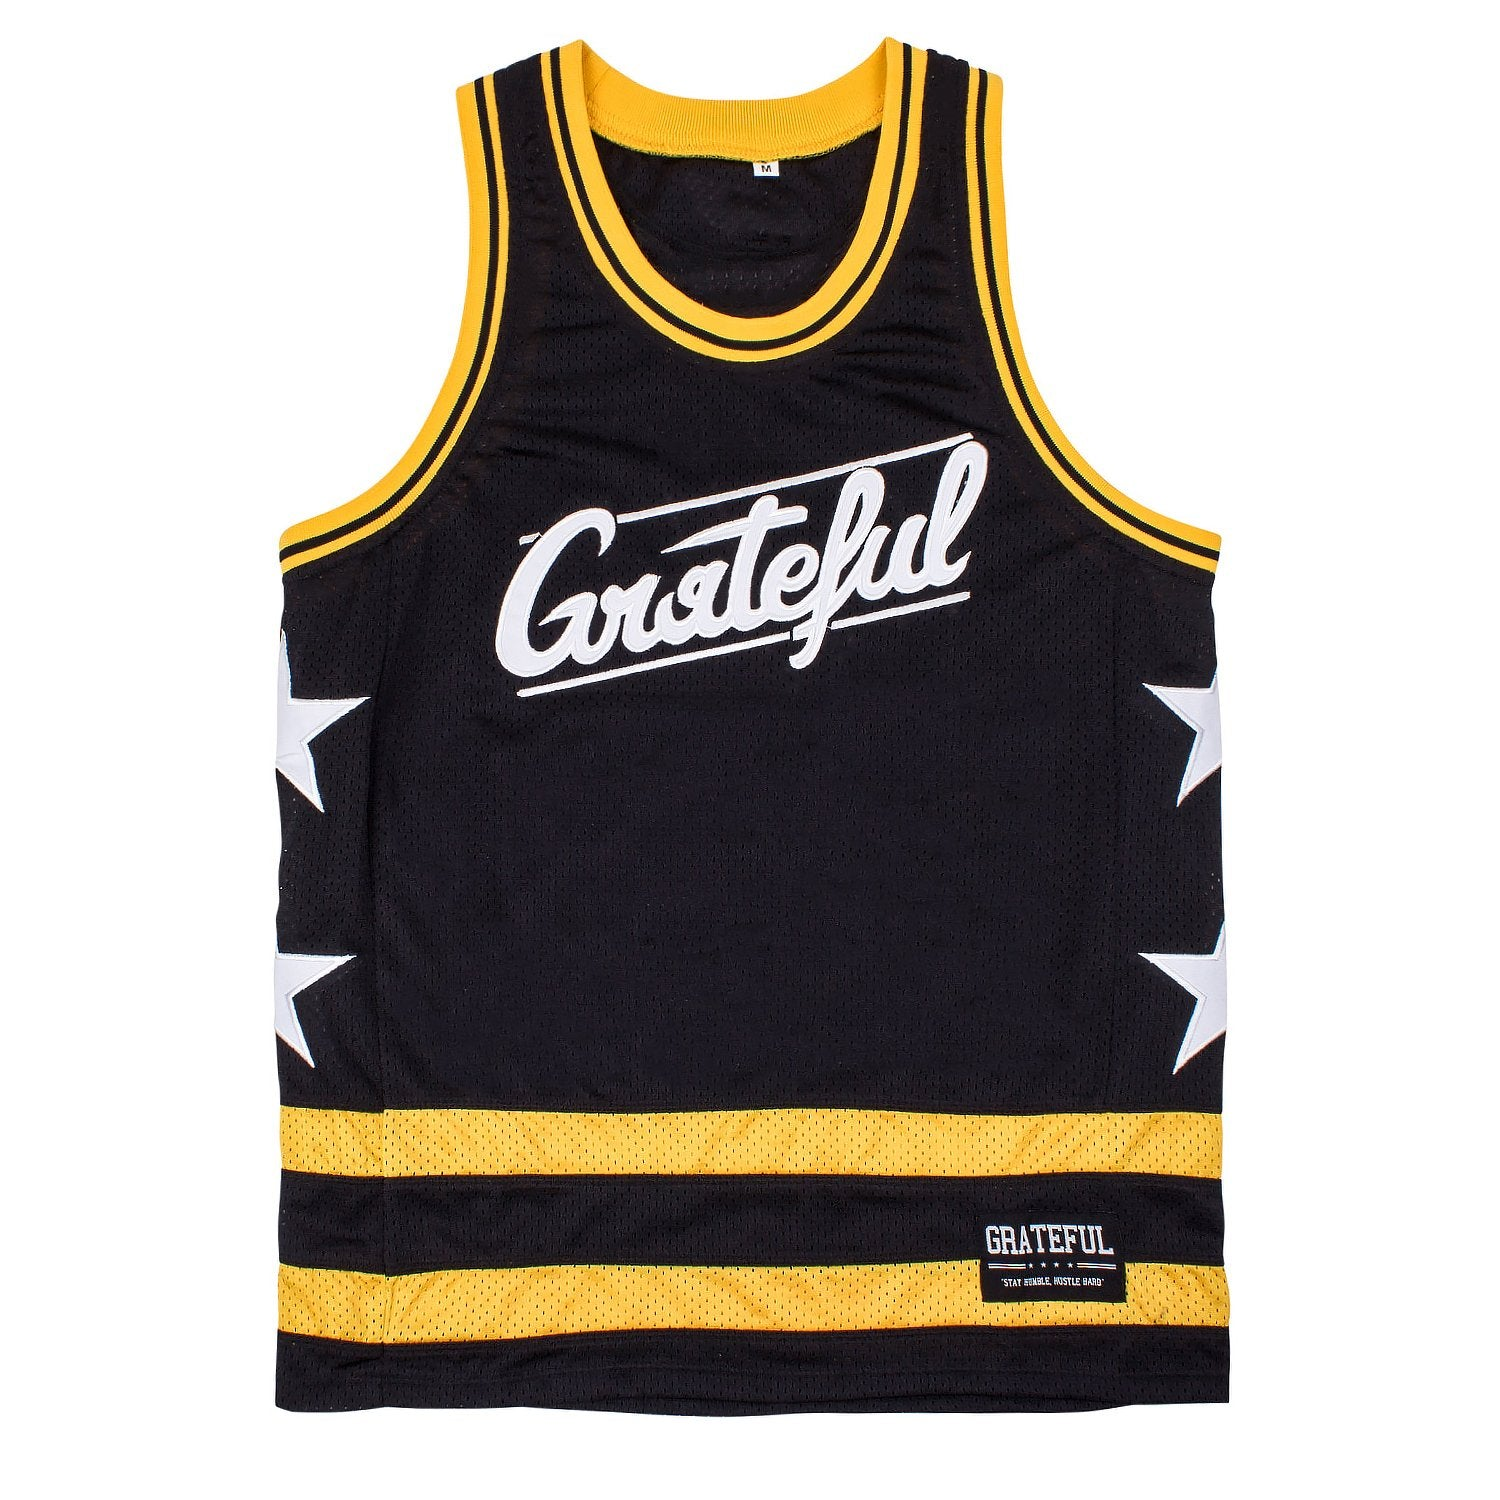 black and yellow jersey